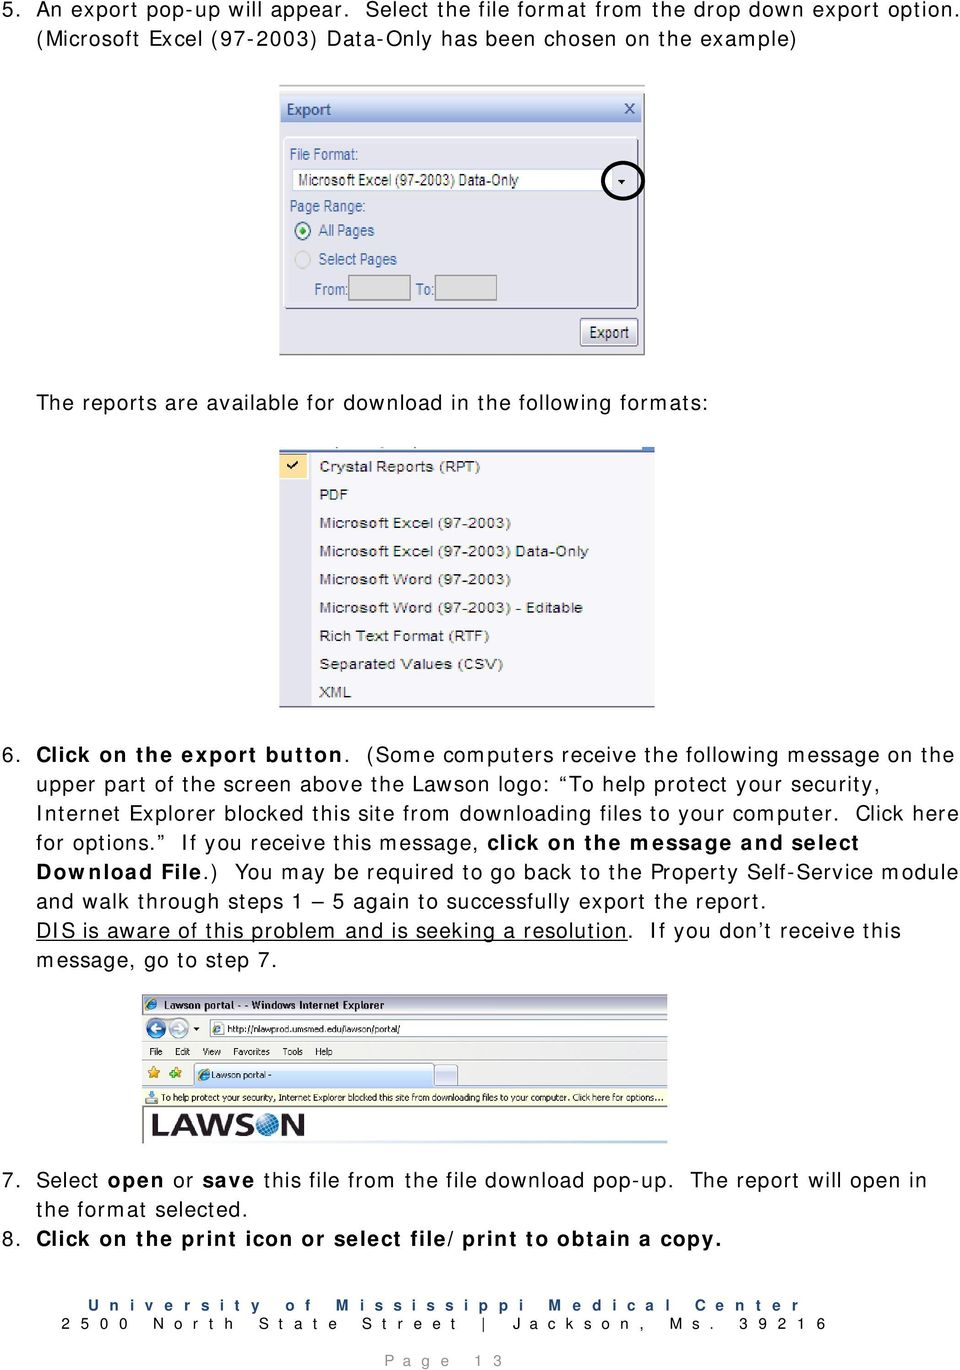 (Some computers receive the following message on the upper part of the screen above the Lawson logo: To help protect your security, Internet Explorer blocked this site from downloading files to your